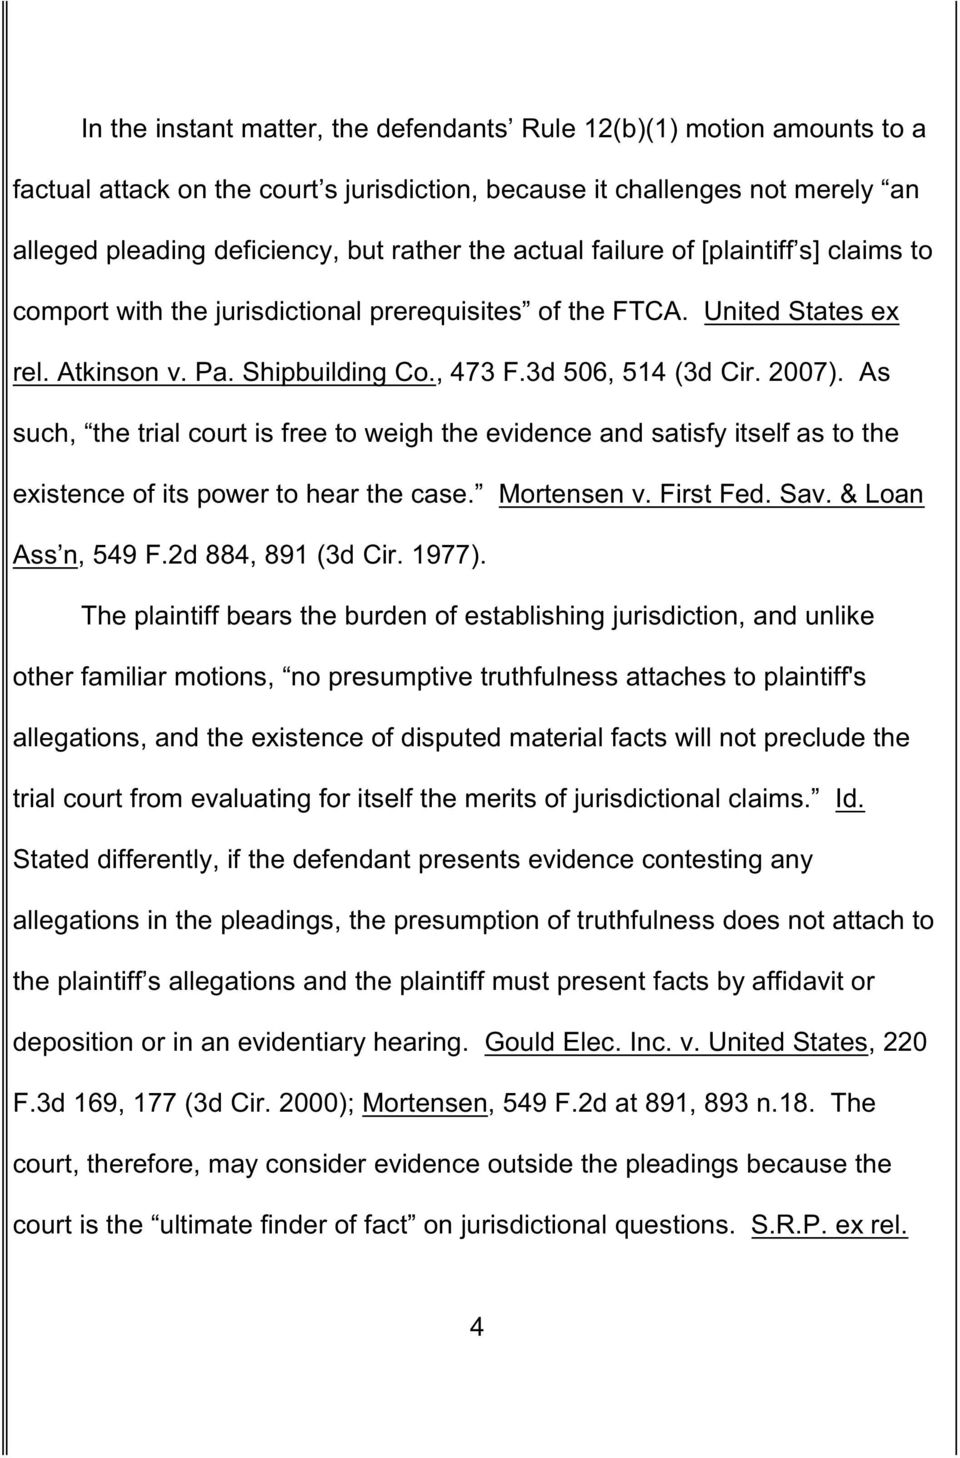 As such, the trial court is free to weigh the evidence and satisfy itself as to the existence of its power to hear the case. Mortensen v. First Fed. Sav. & Loan Ass n, 549 F.2d 884, 891 (3d Cir.